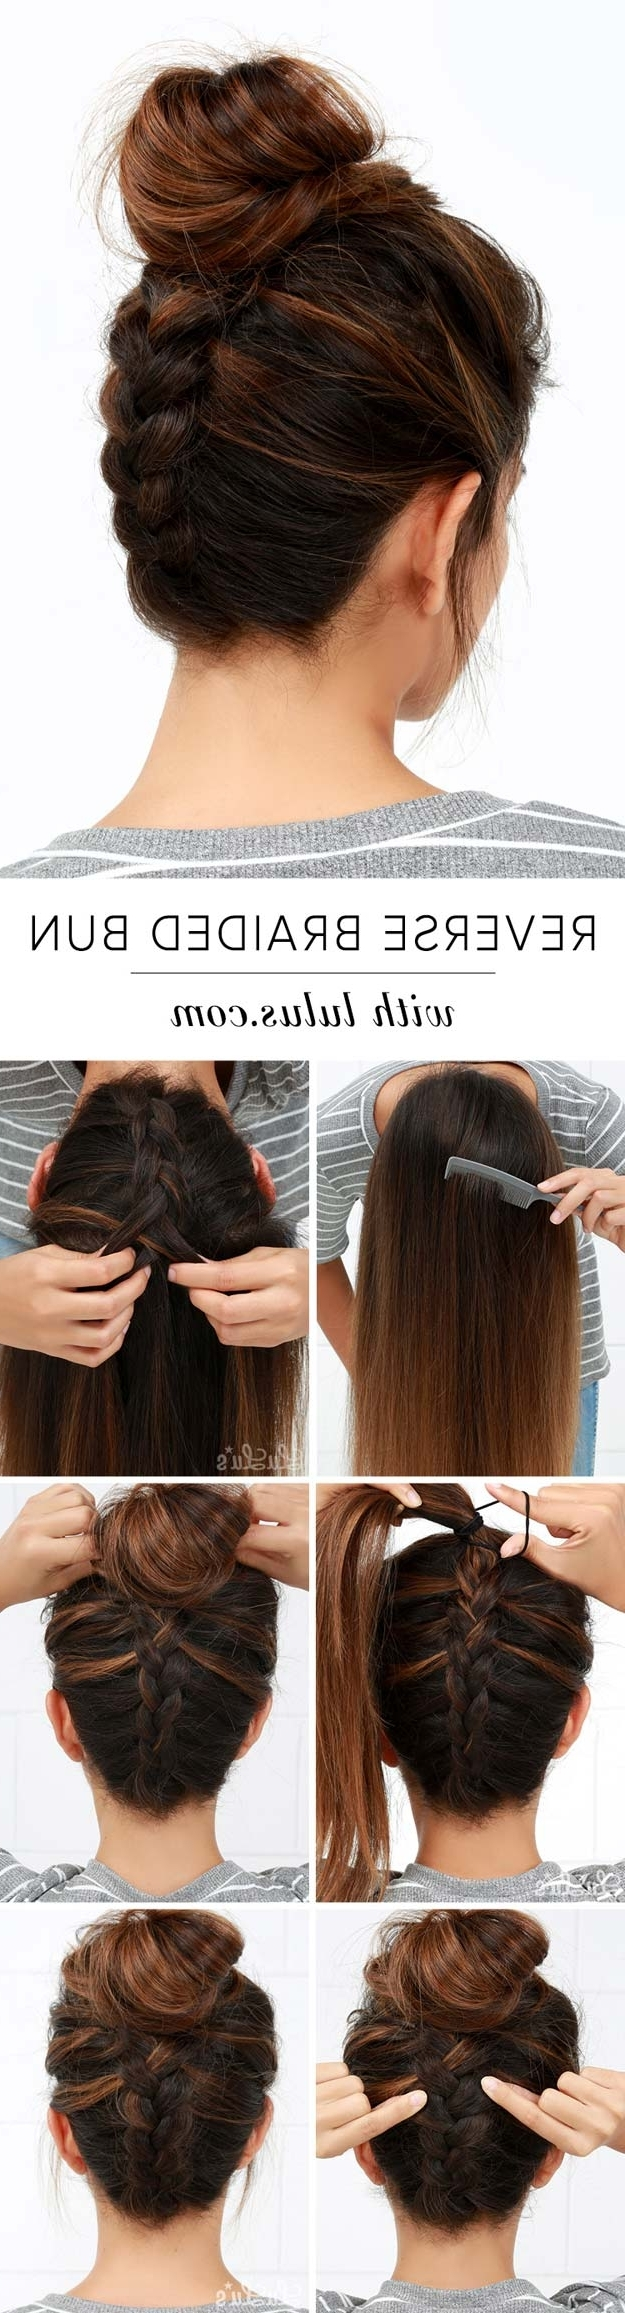 41 Diy Cool Easy Hairstyles That Real People Can Do At Home 10+ Adorable Awesome Easy Hairstyles For Medium Hair